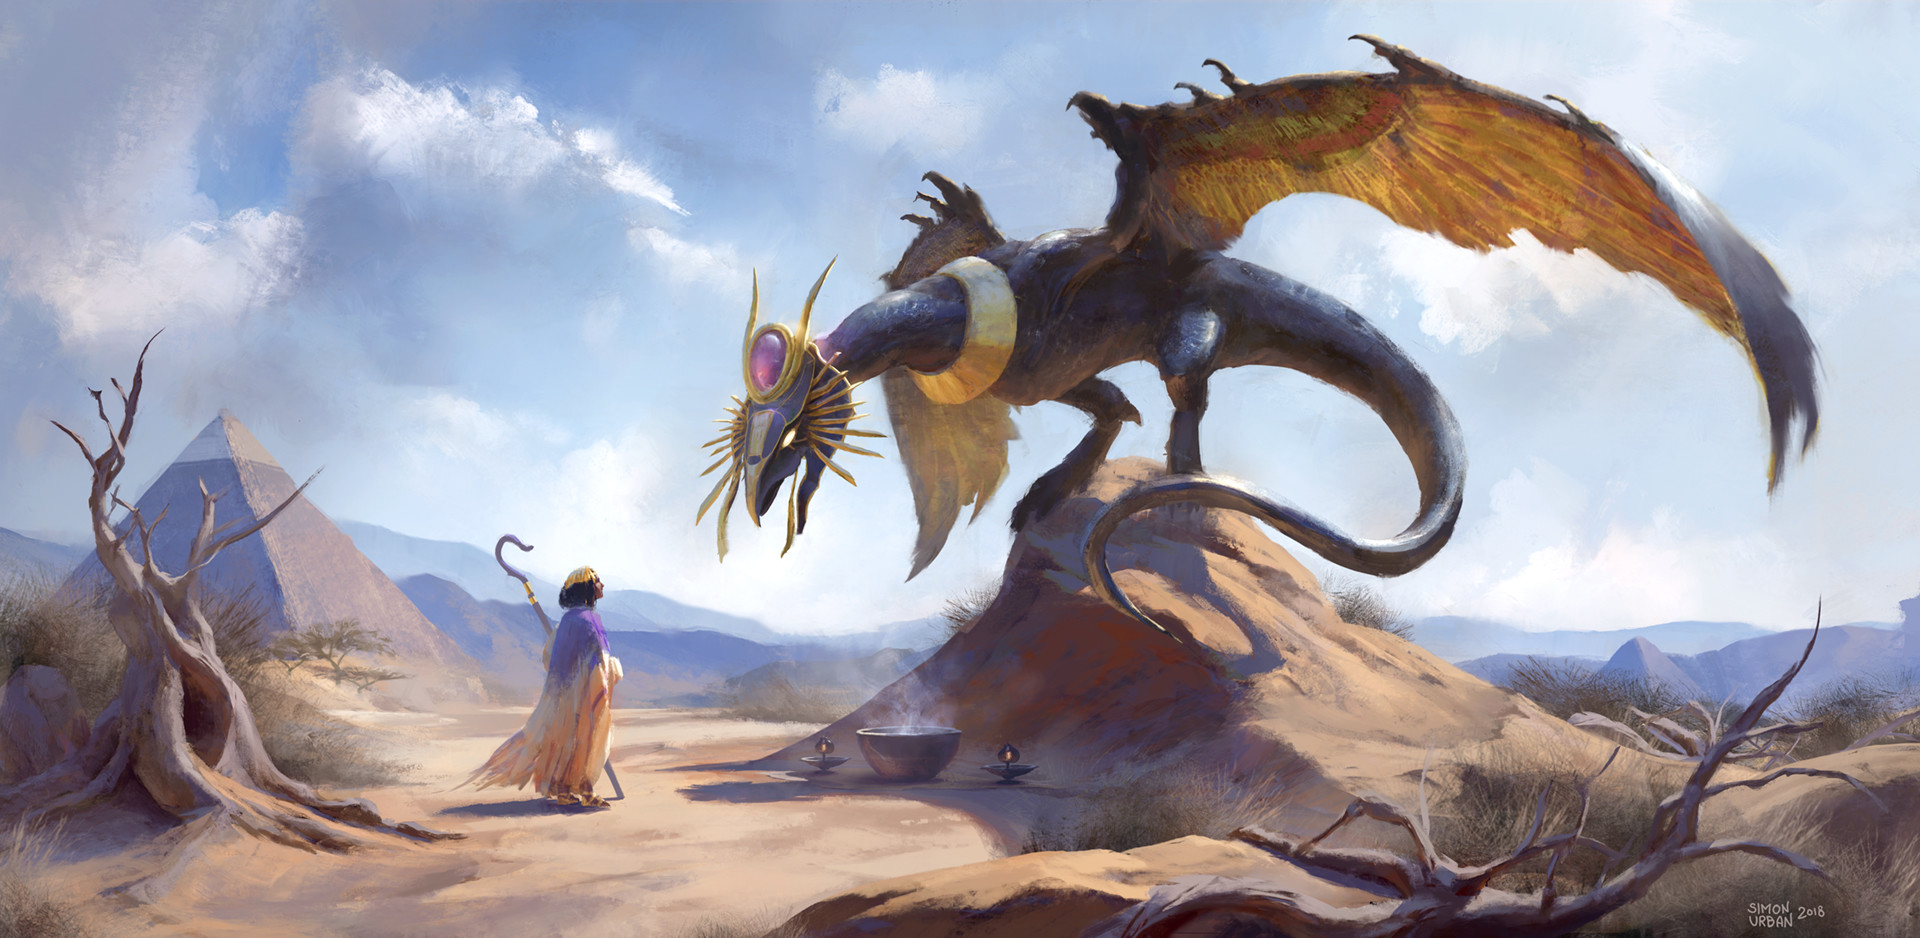 Mythological Dragons: Egyptian Dragon, Simon Urban